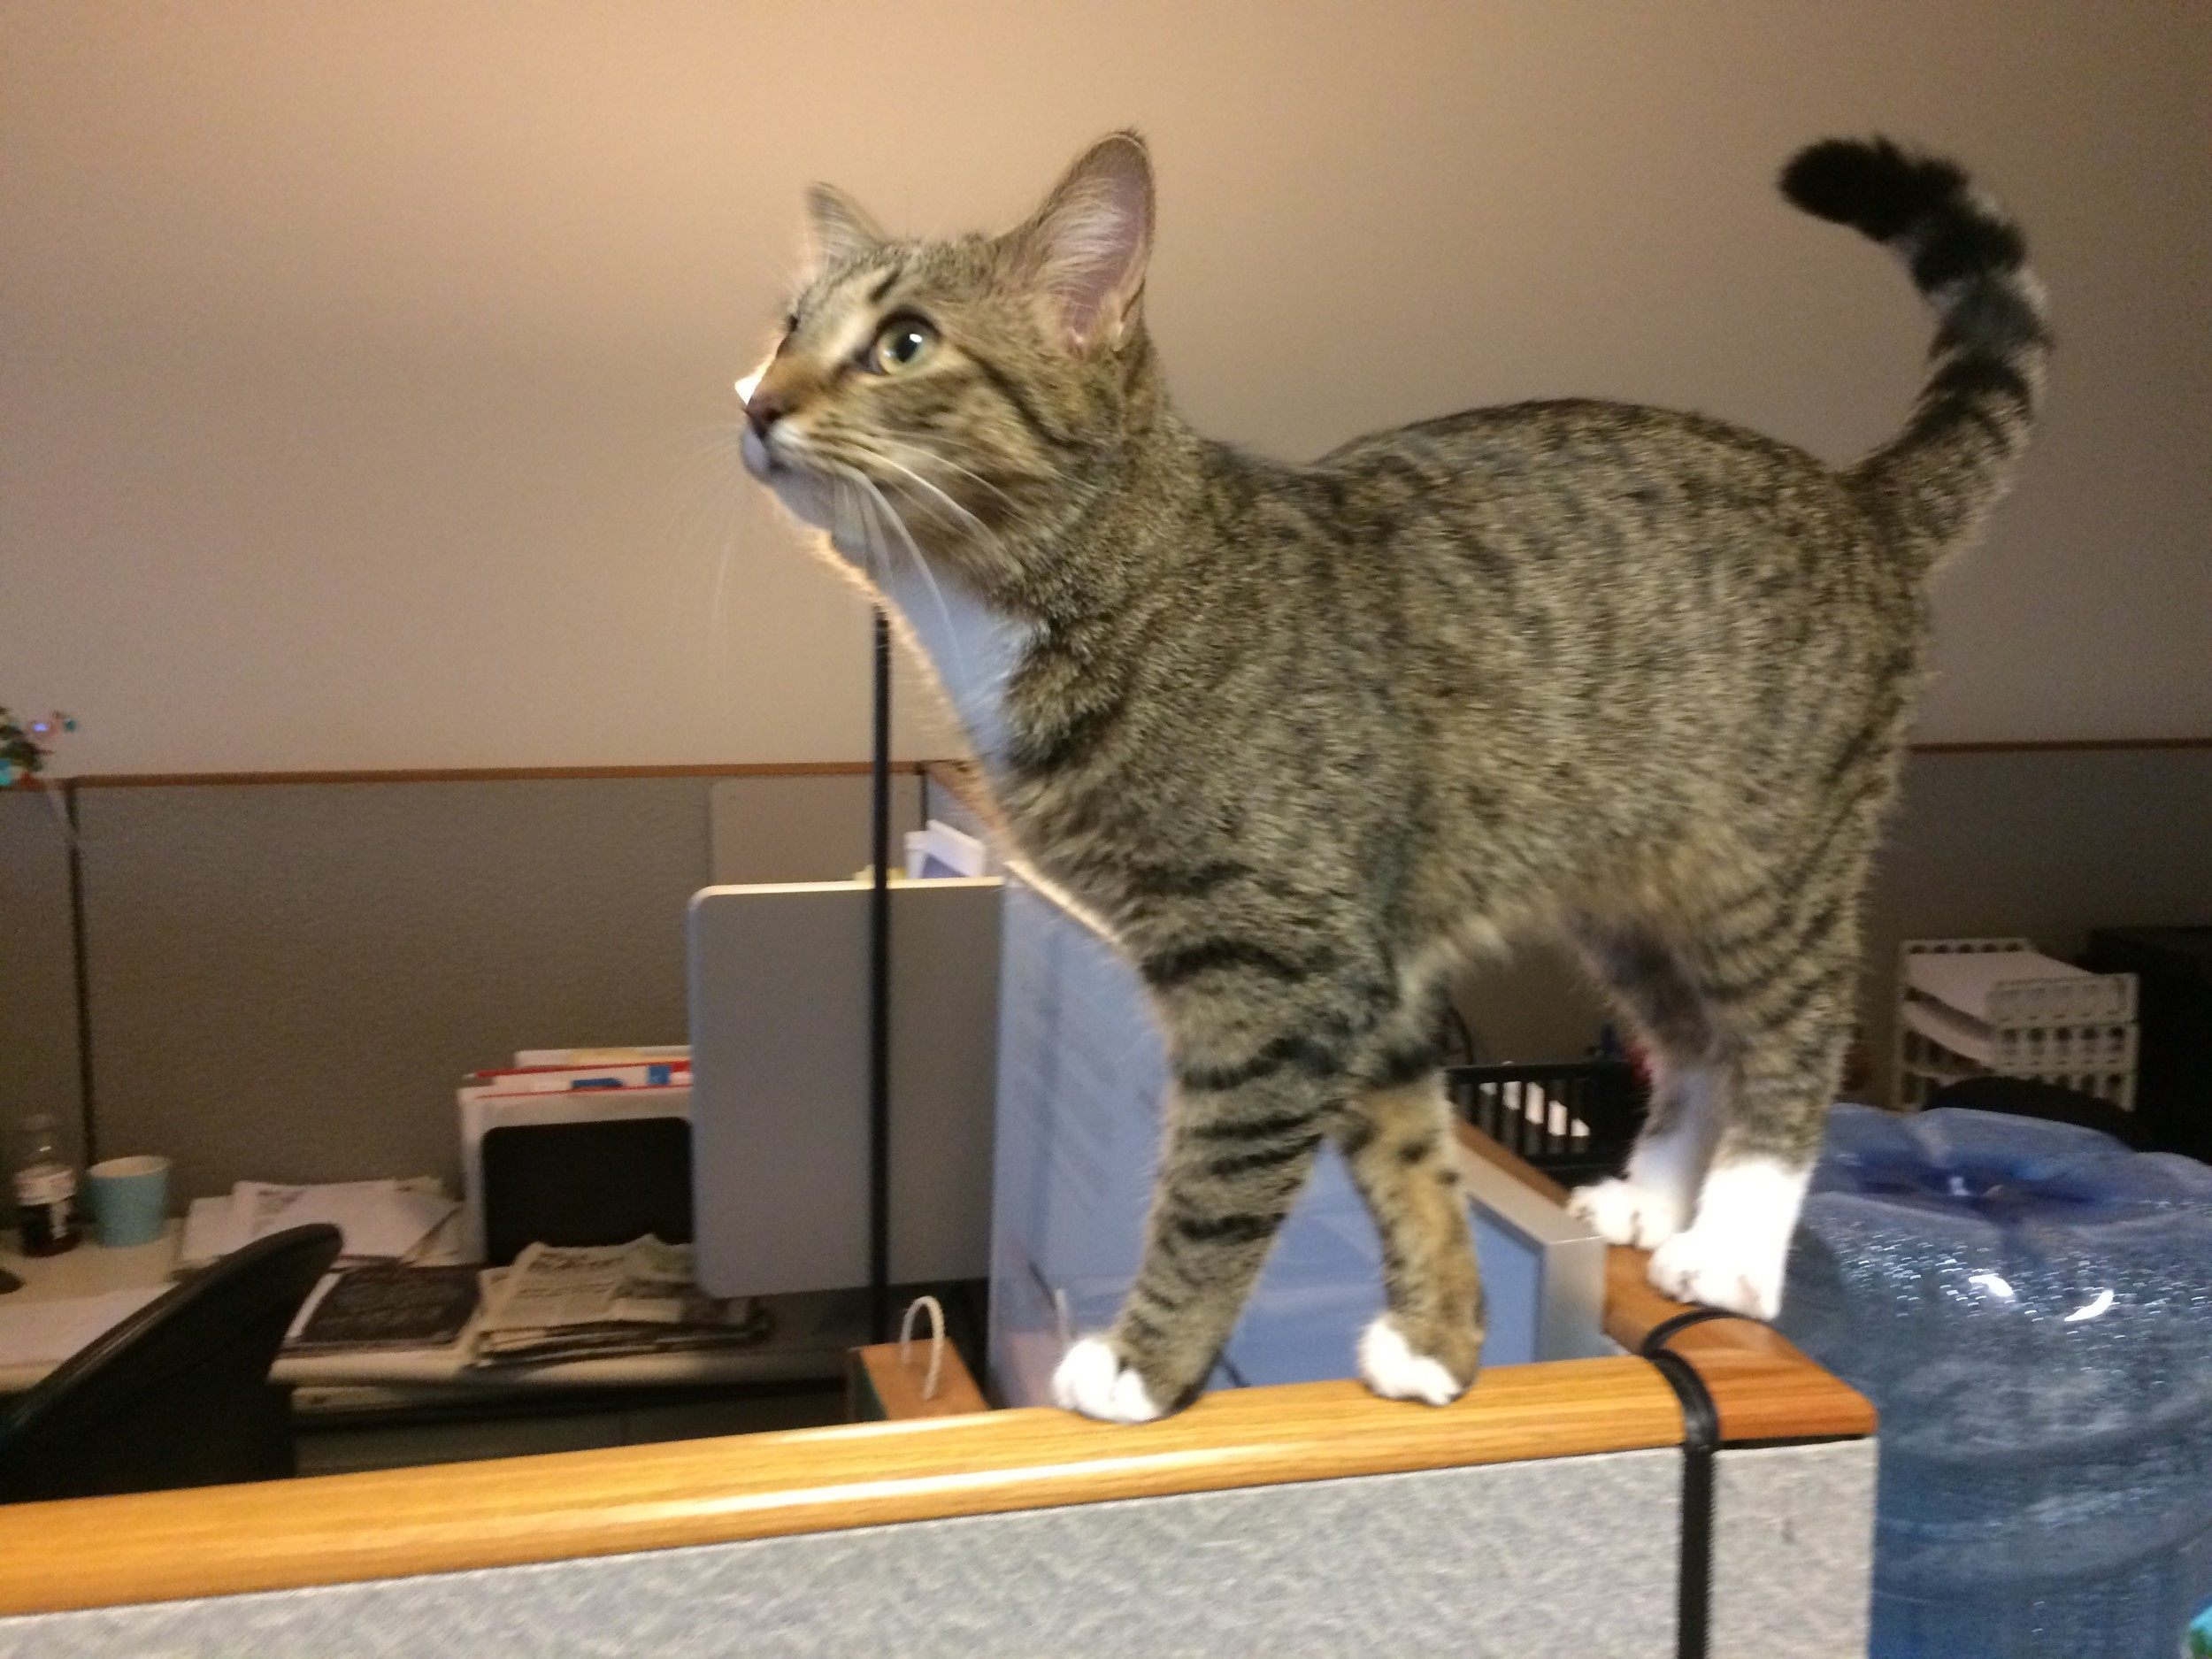 Charlotte, the Ostendorf's kittten, comes to the office on Feline Fridays to help lighten up the end of the week for everyone. Her office antics keep us smiling.